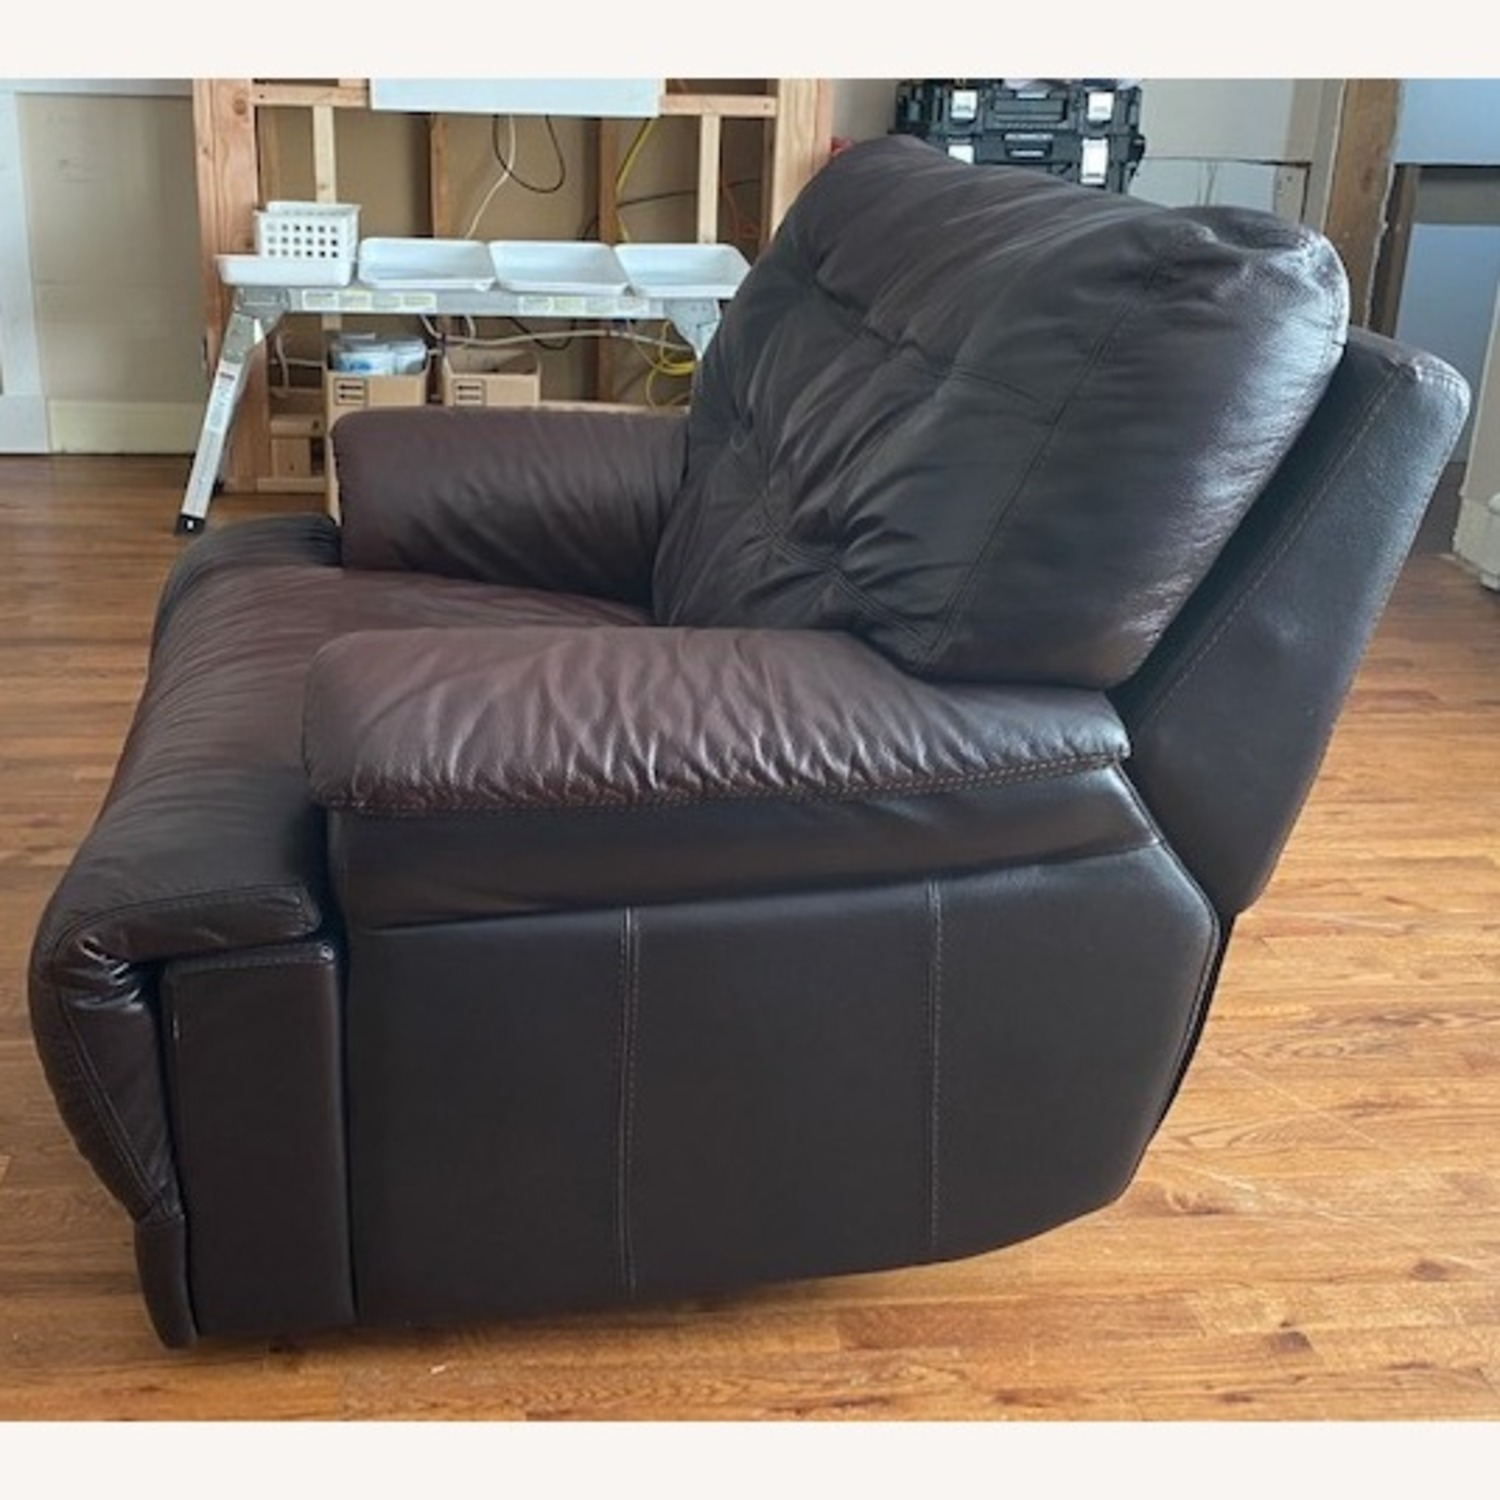 Chateau D'ax Expresso Leather Recliner Chair - image-4